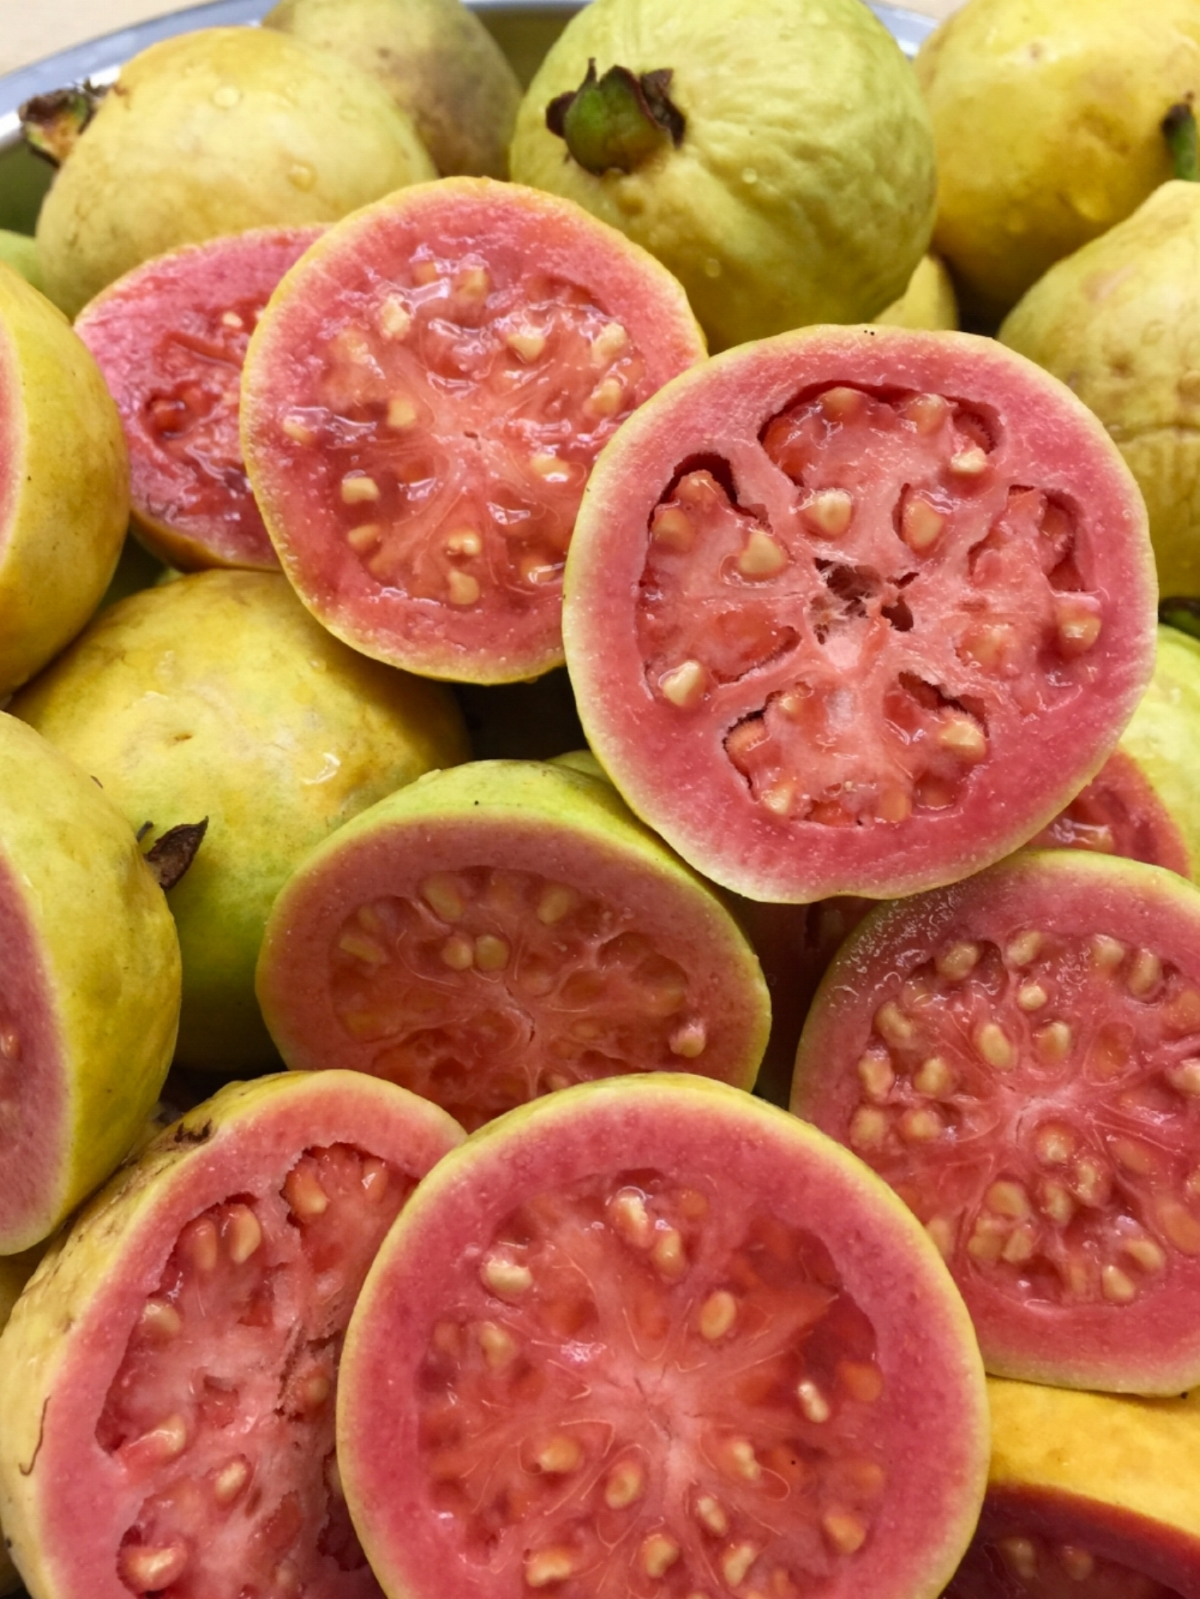 Local Mexican Guavas grown in the Silverlake neighborhood of Los Angeles.